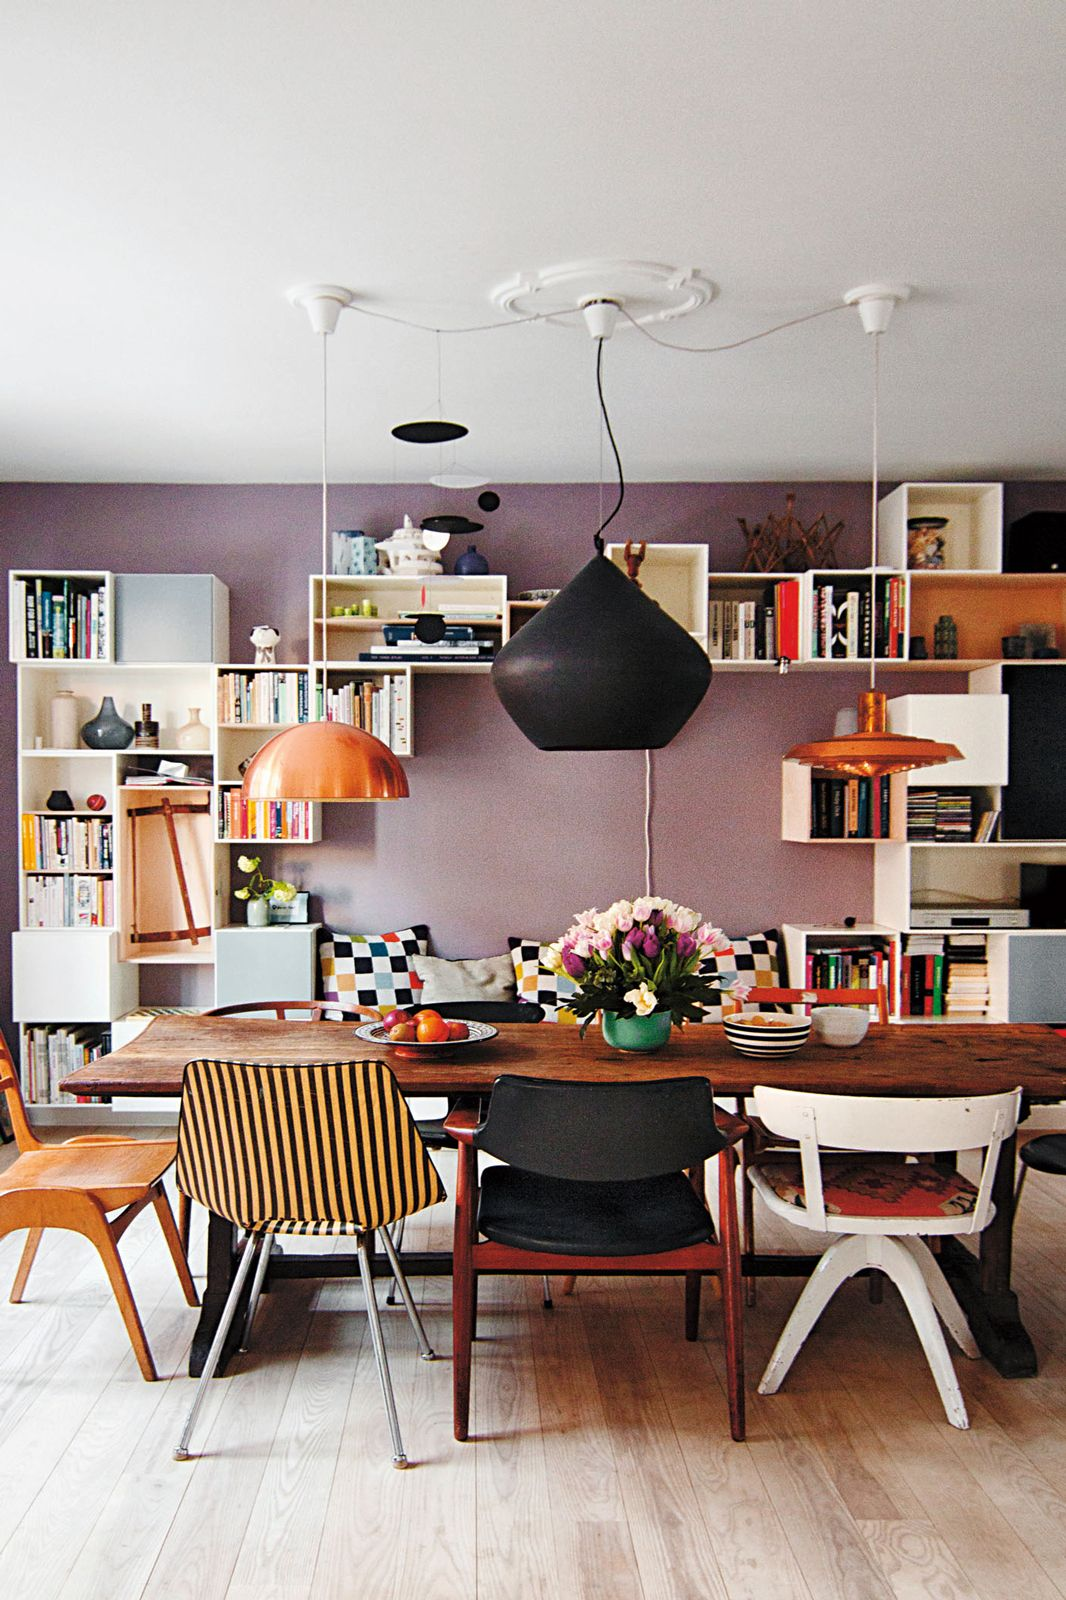 Zimmer im paris-stil  homes thatull make you want to pack up u move  chambre etudiant